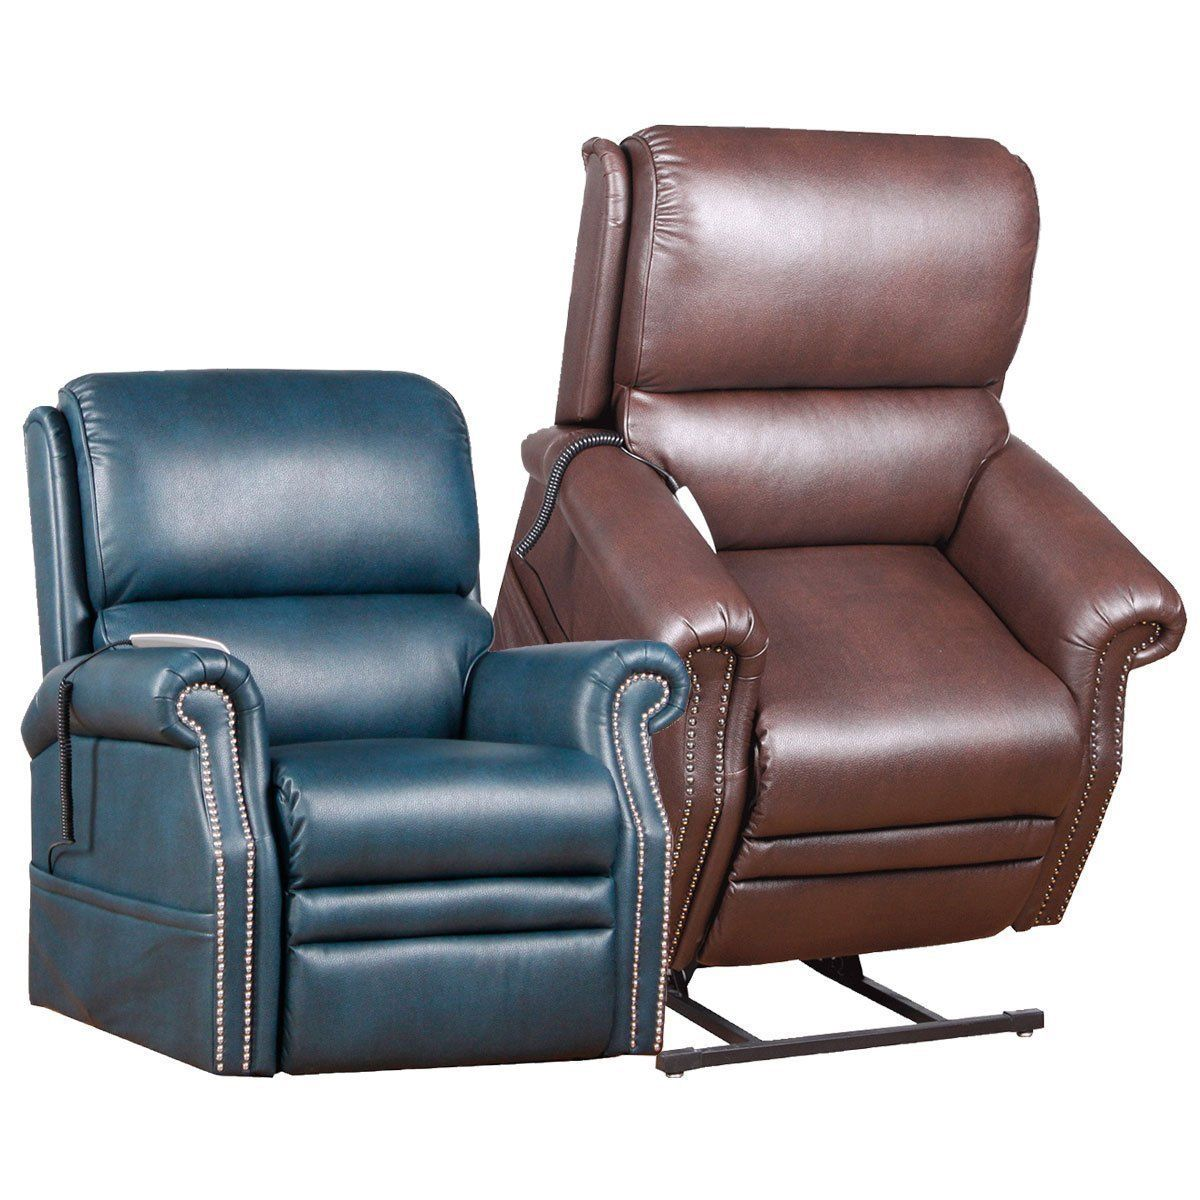 7 Best Recliners For Tall Man Reviewed In Detail Sept 2020 Tall Guys Recliner Tall